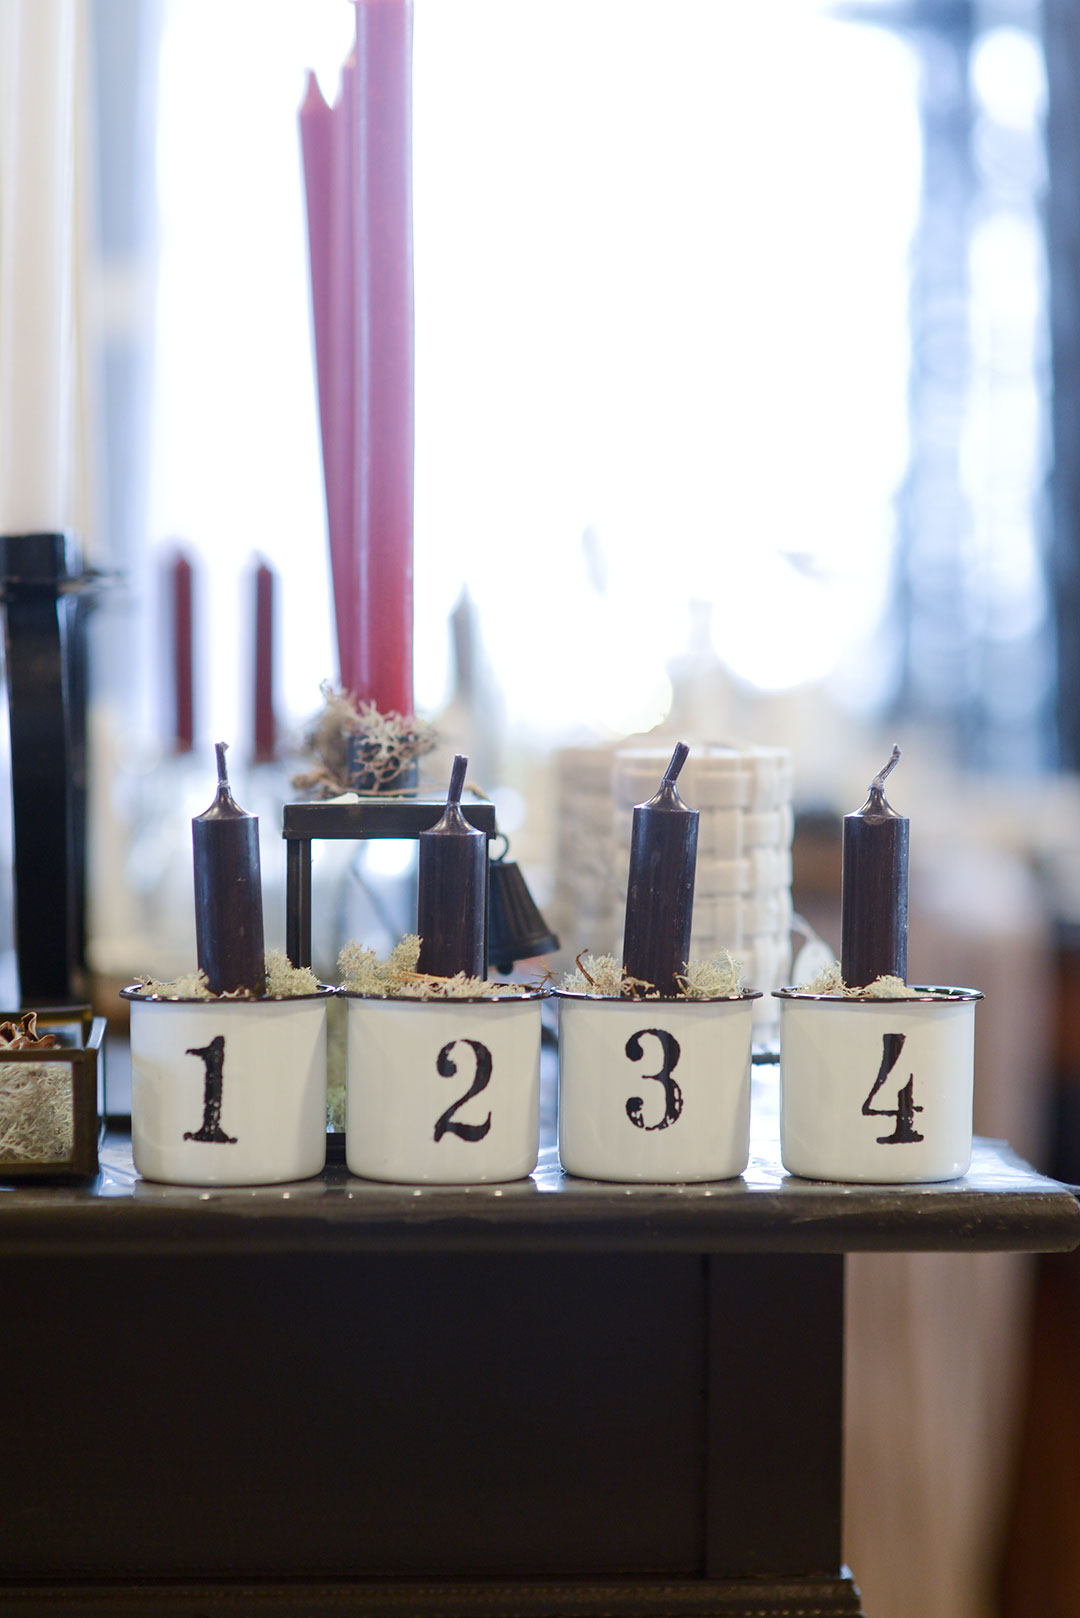 Cute advent candles